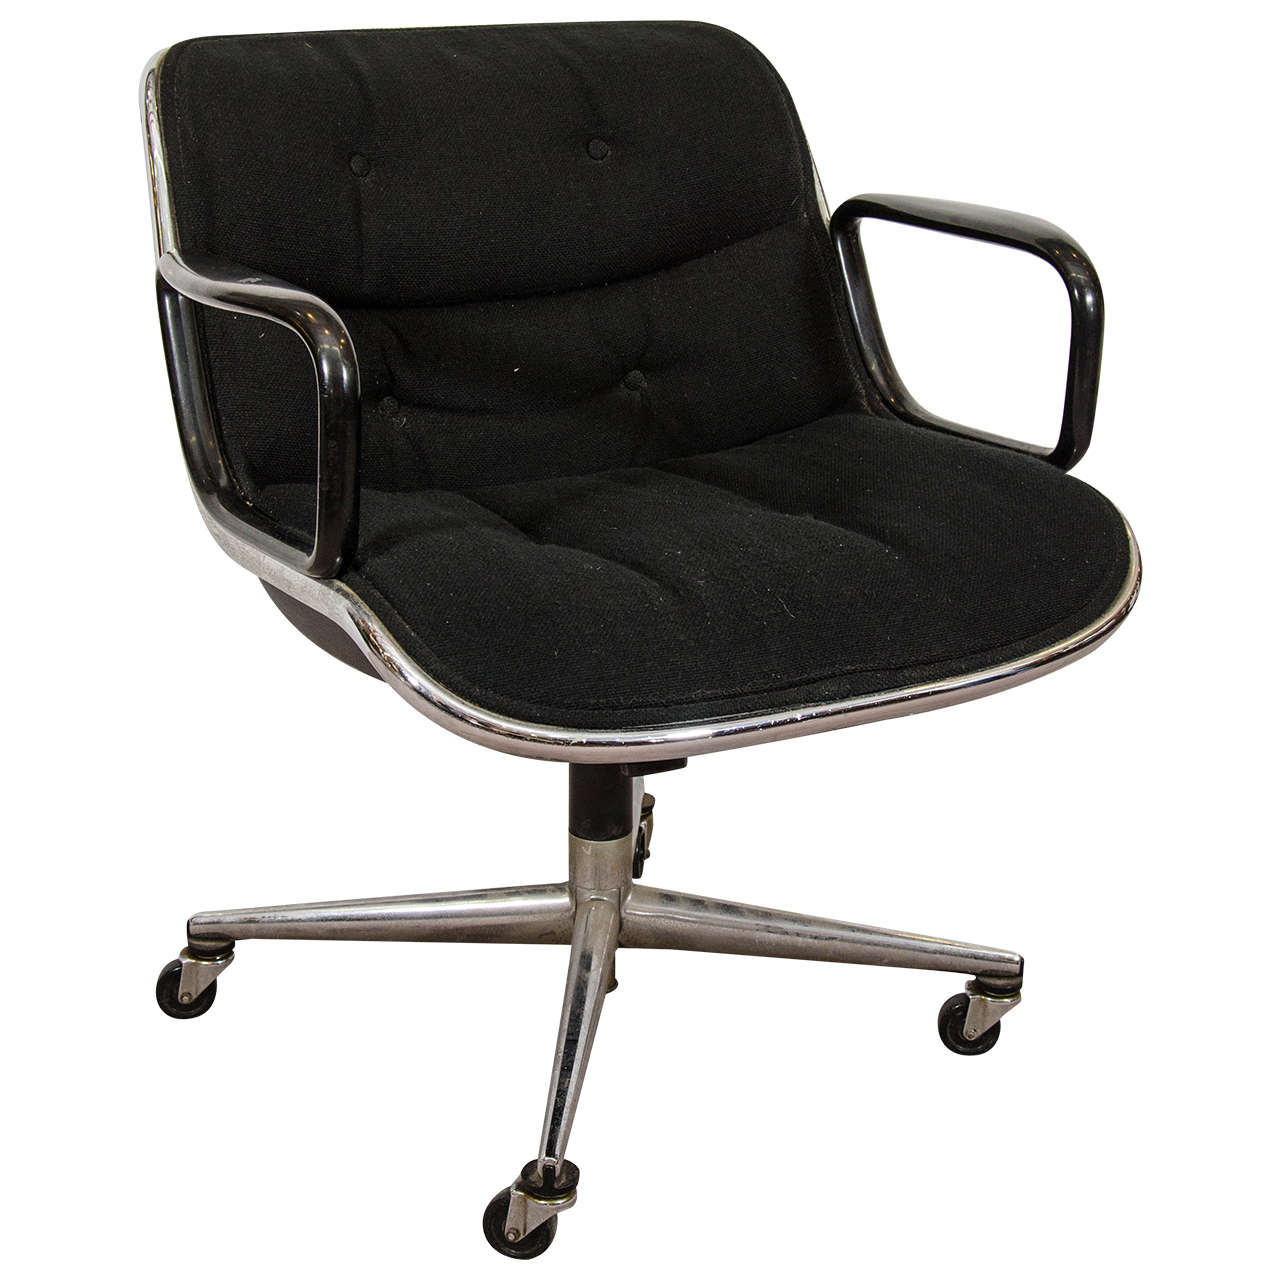 Knoll Pollock Chair Midcentury Charles Pollock For Knoll Executive Chair With